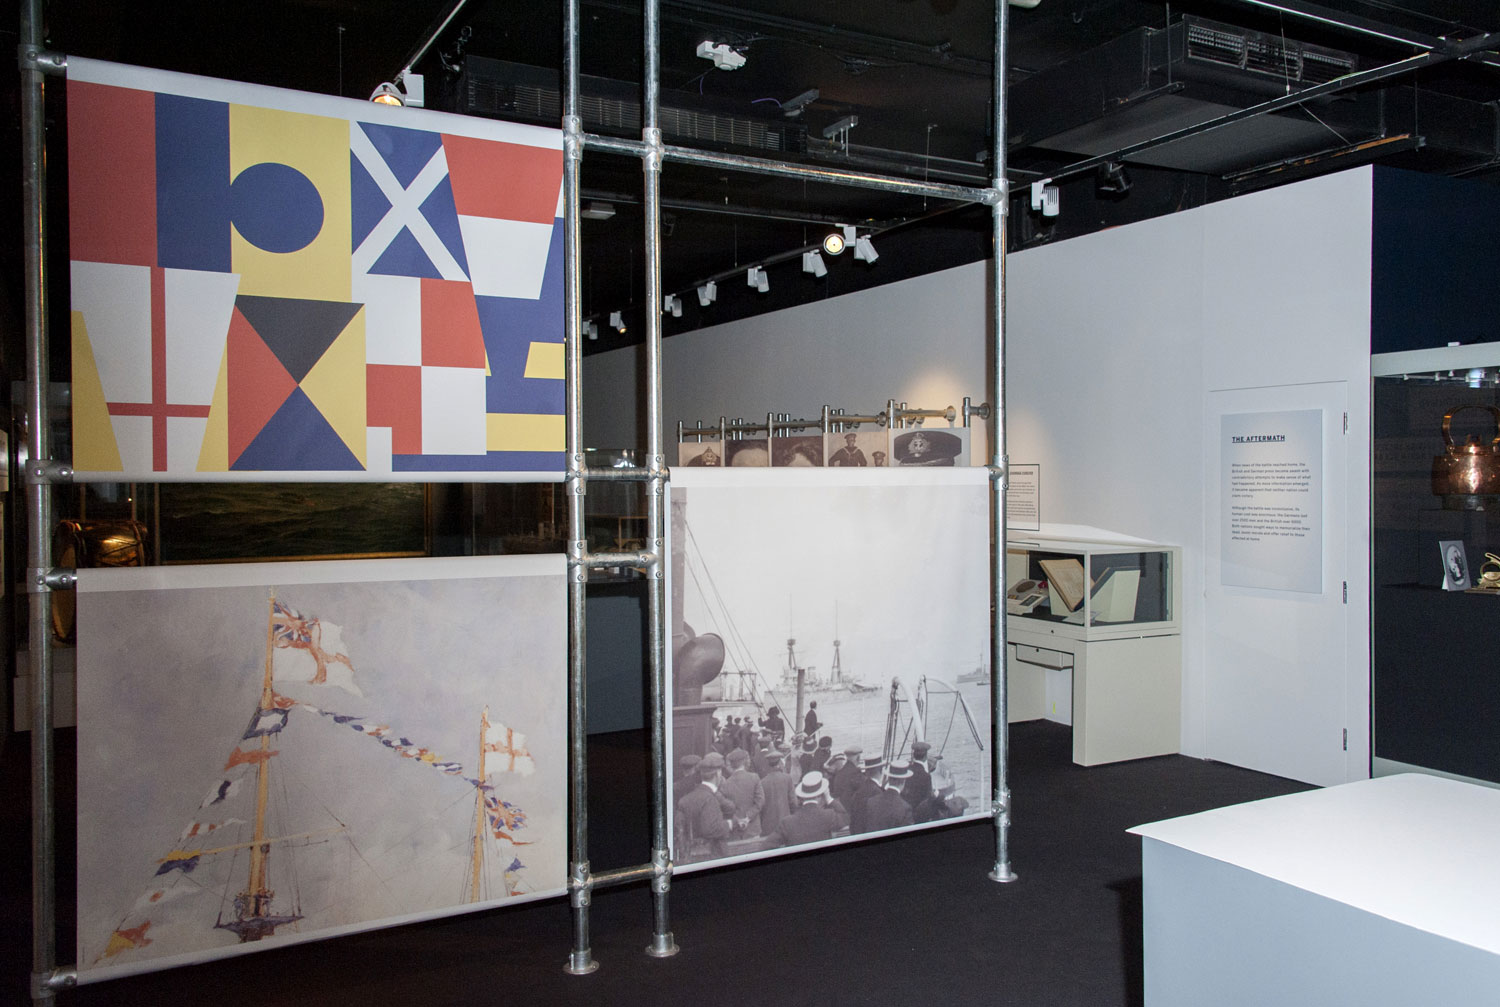 photograph of interior of museum gallery showing naval flags and photographs